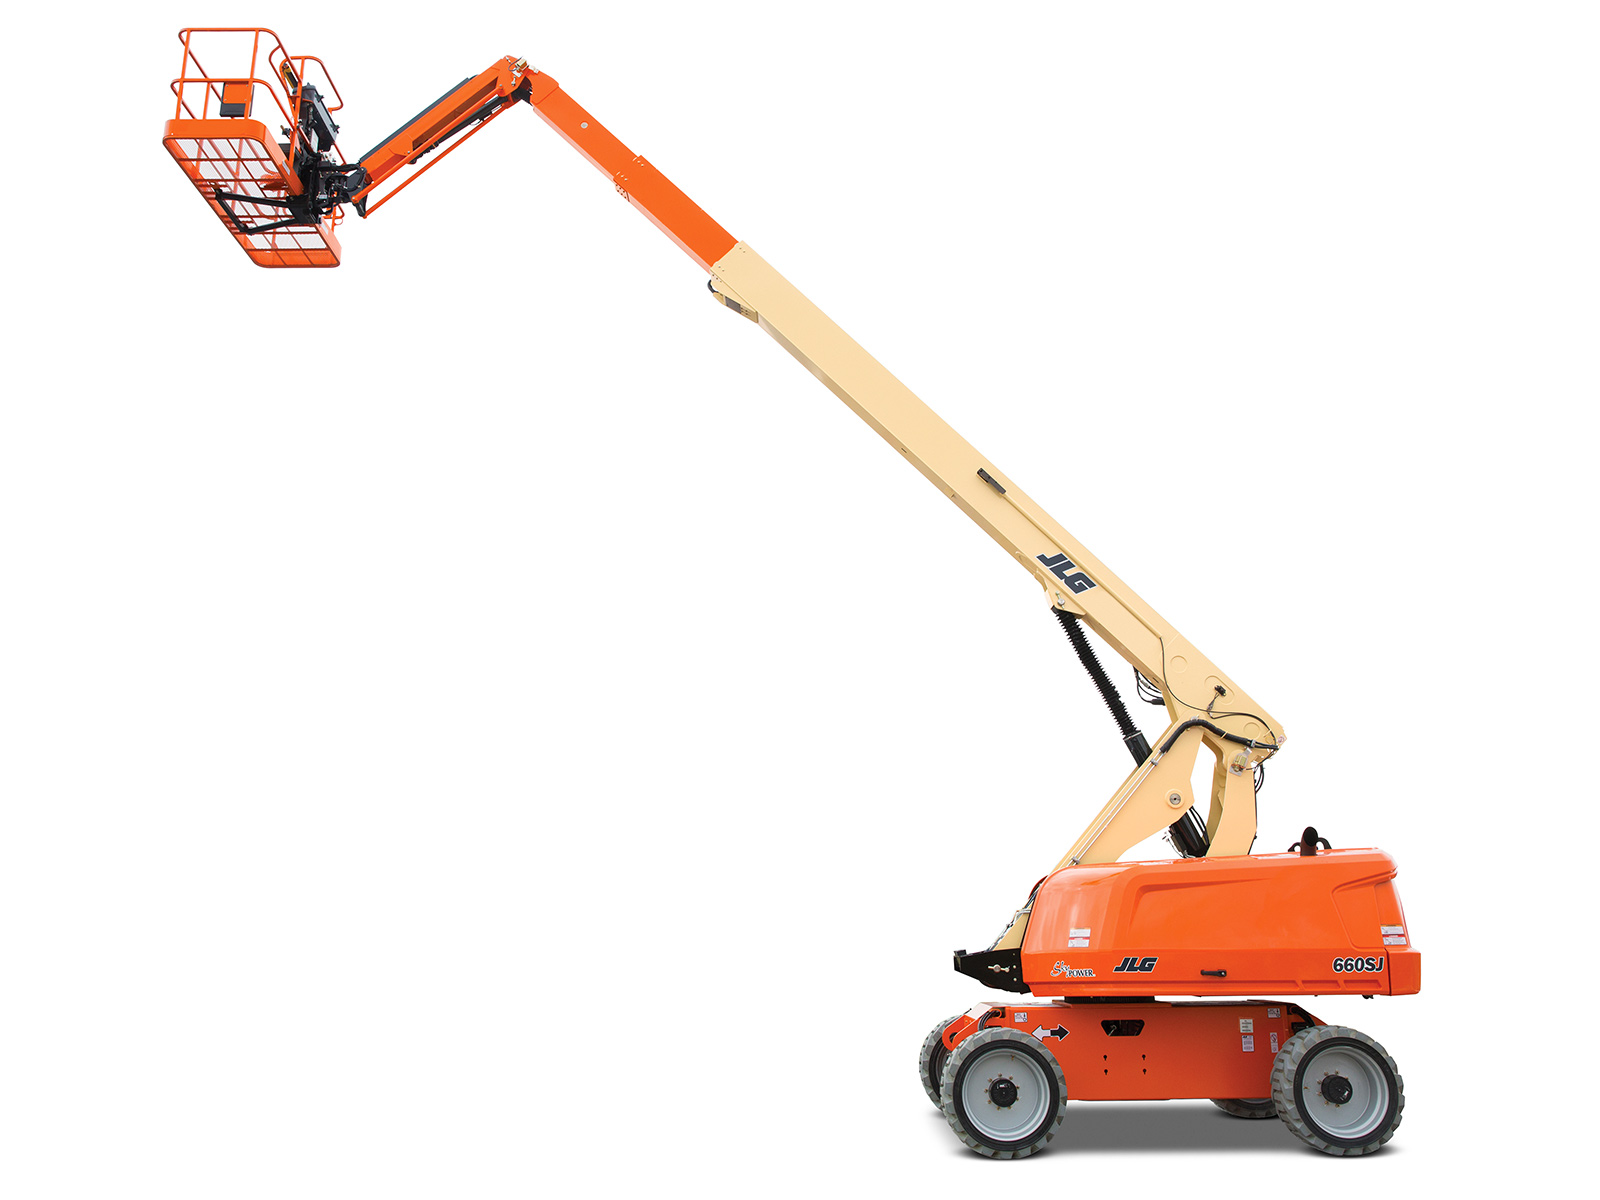 660SJ - 22.02M (72.24Ft) Diesel Telescopic Boom Lift